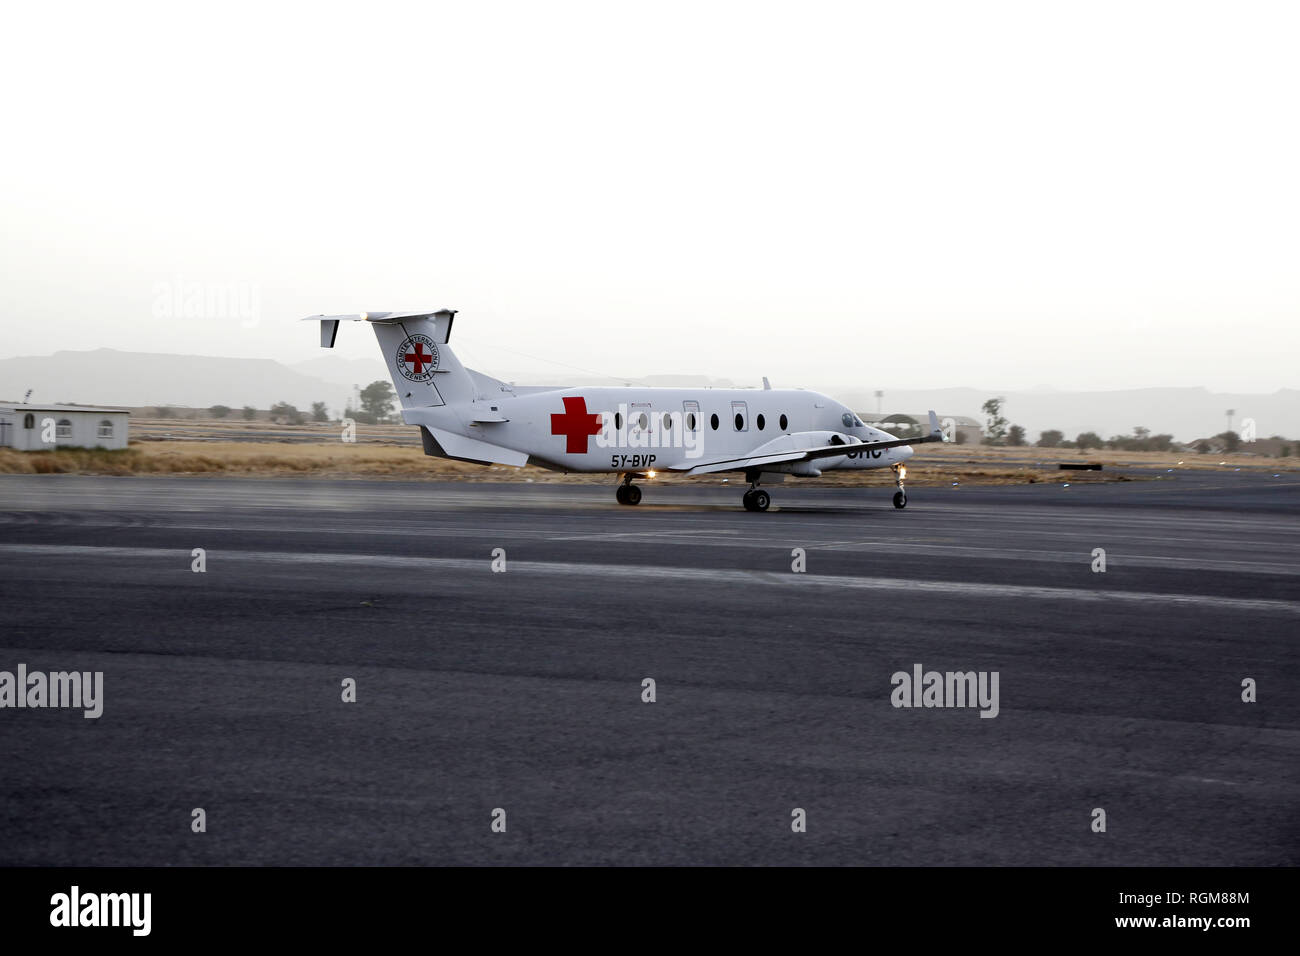 """Sanaa, Yemen. 29th Jan, 2019. A plane of the International Committee of the Red Cross (ICRC) takes off as it carries Musa Awagi released by the Houthi rebels at the Sanaa International Airport, in Sanaa, Yemen, on Jan. 29, 2019. Yemen's Houthi rebels on Tuesday handed over a captured Saudi soldier to the ICRC, the rebels said in a statement. """"The sick Saudi soldier Musa Awagi will be transported to his country through an ICRC plane today (Tuesday),"""" the statement said. Credit: Mohammed Mohammed/Xinhua/Alamy Live News Stock Photo"""